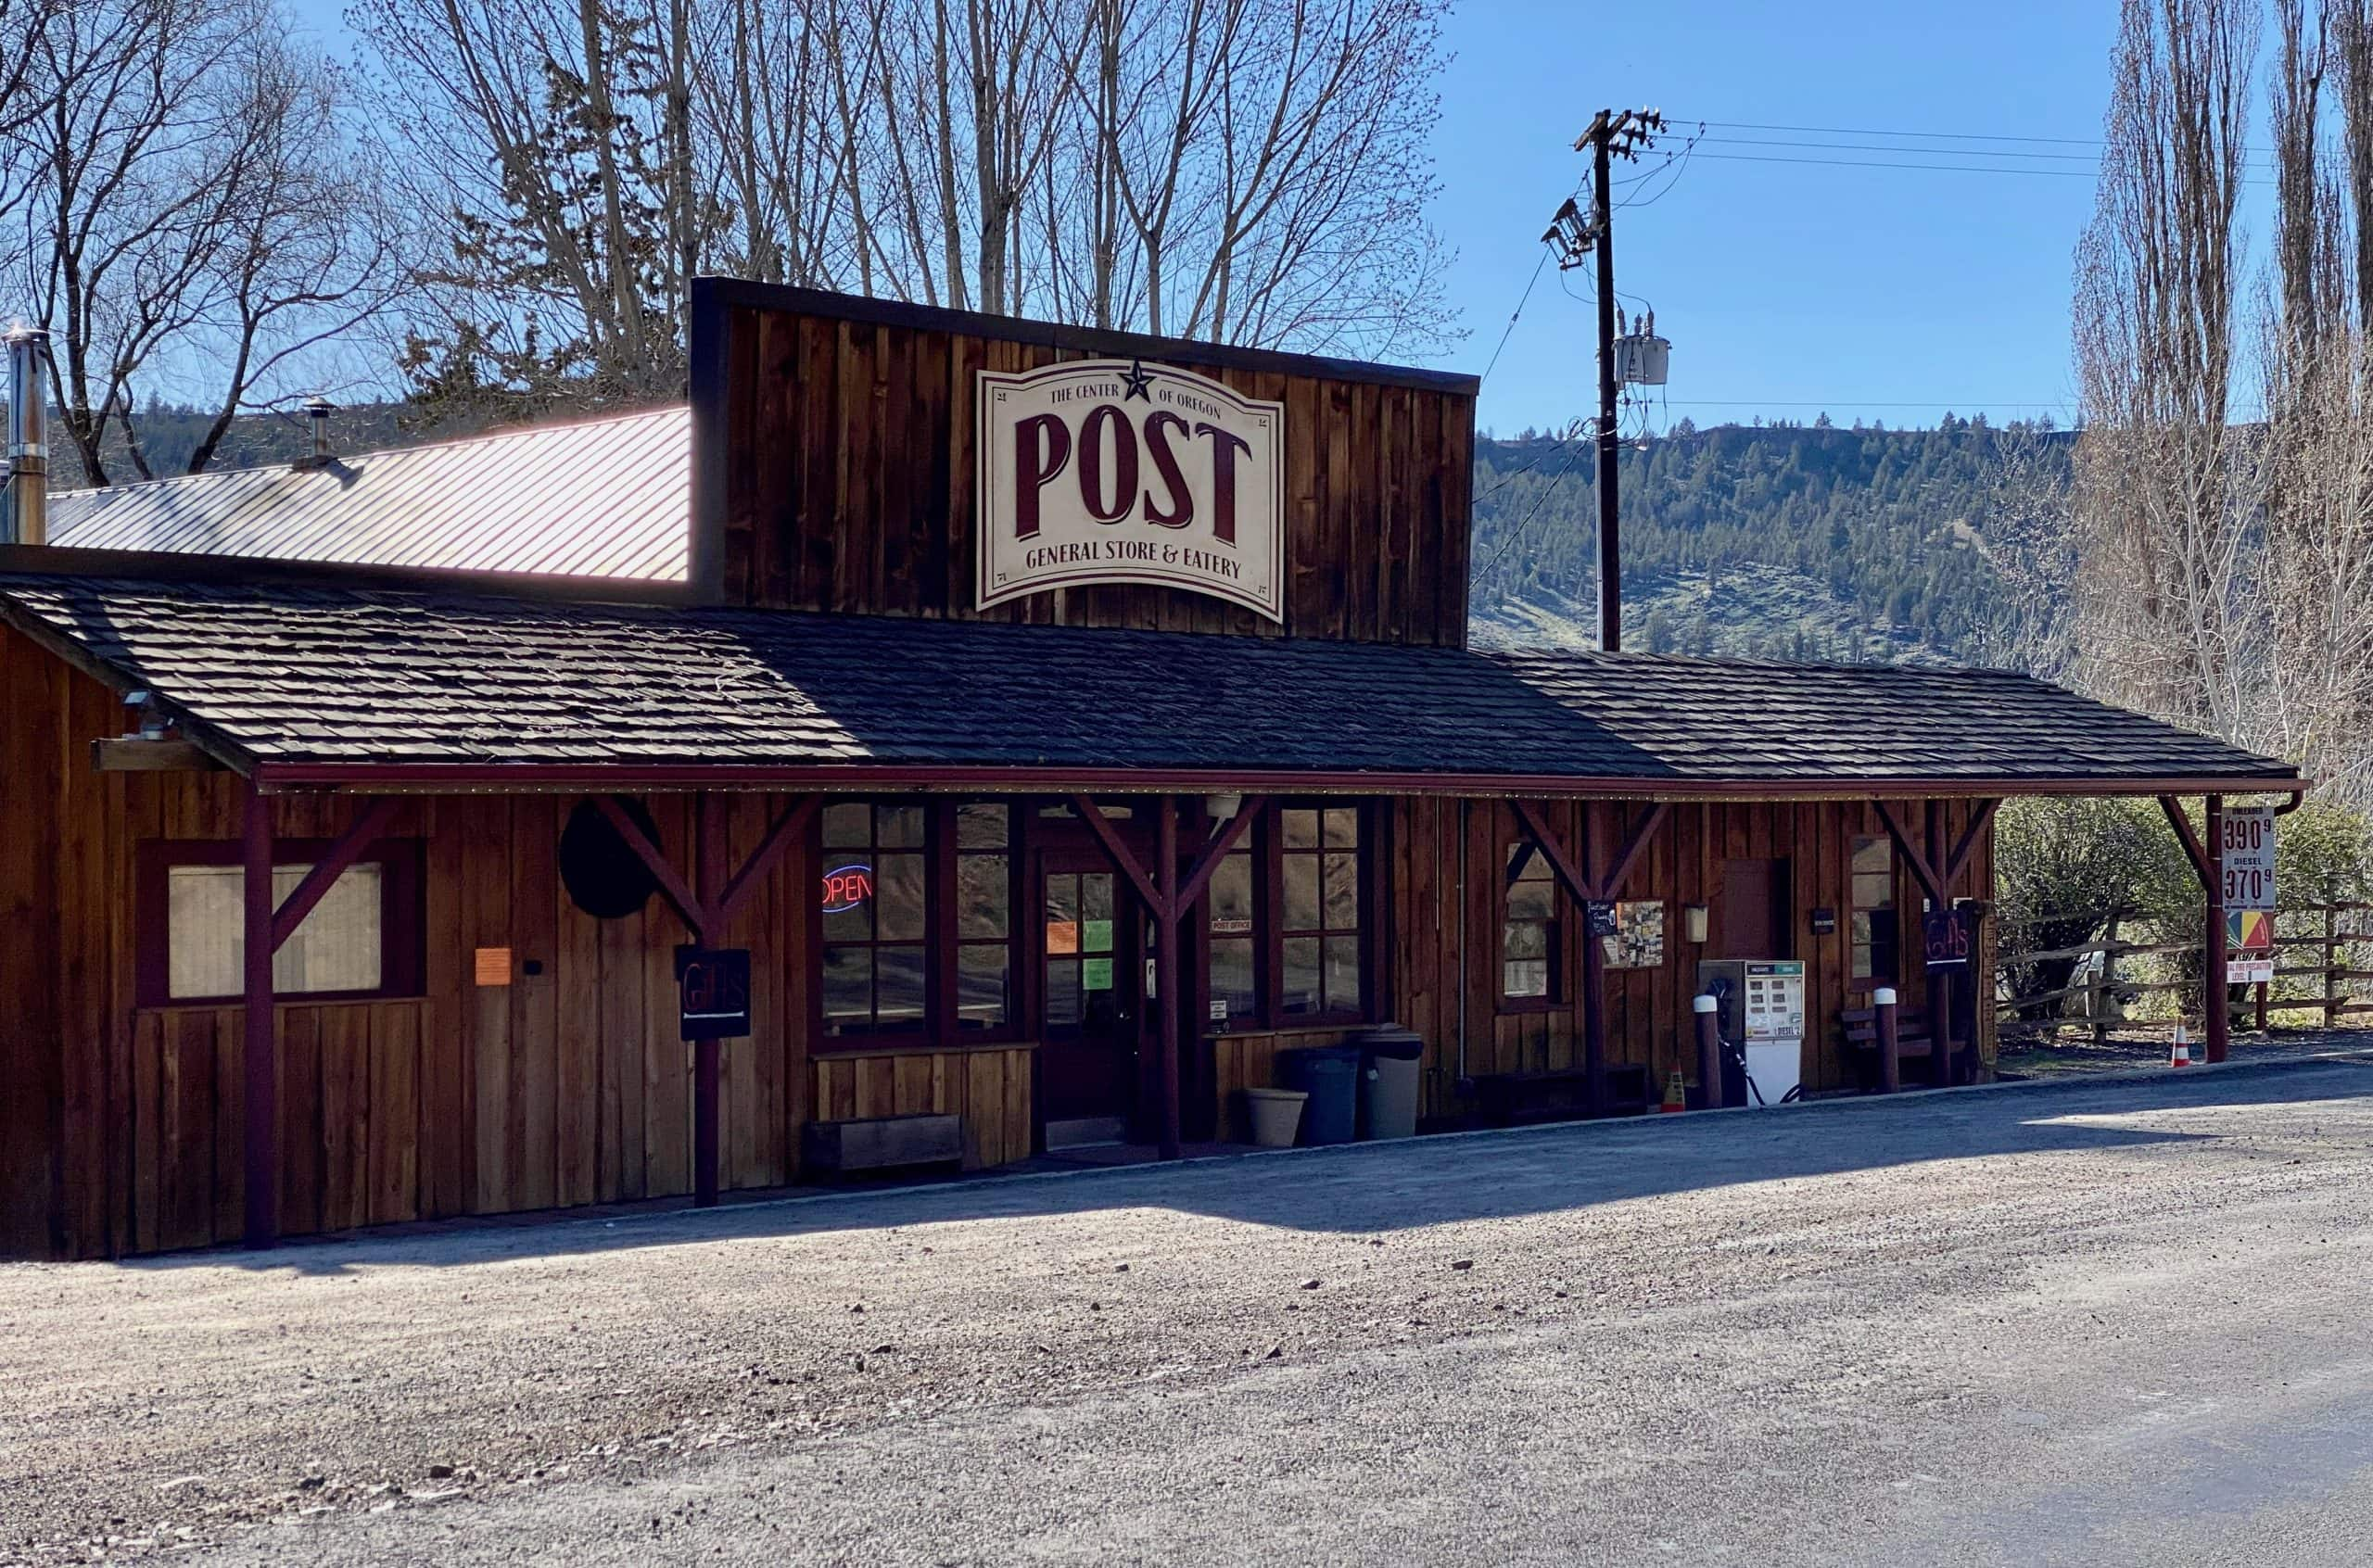 Post General store in Central Oregon.